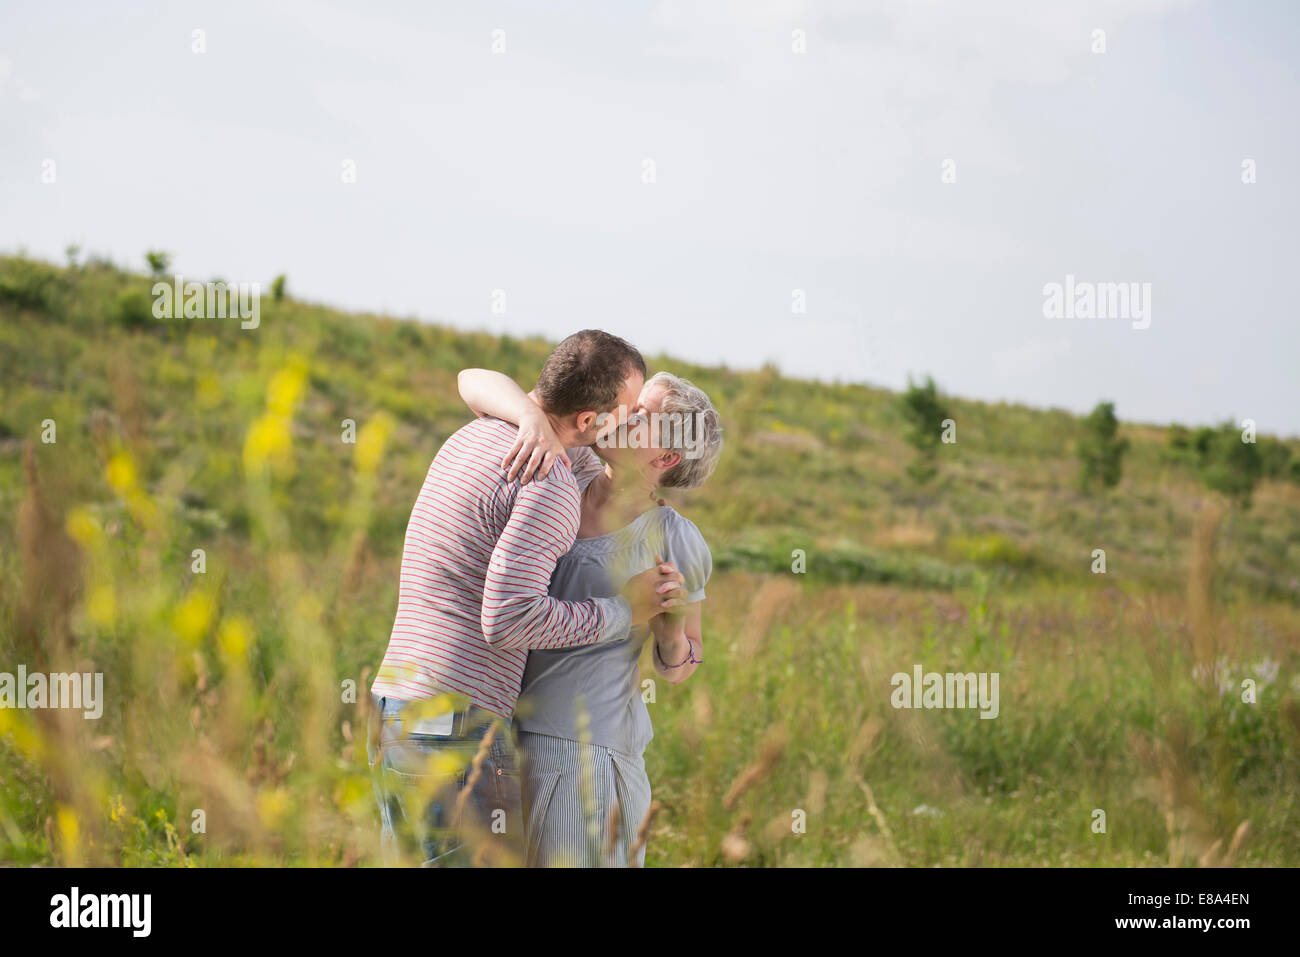 mature couple kissing in field stock photo: 73981789 - alamy